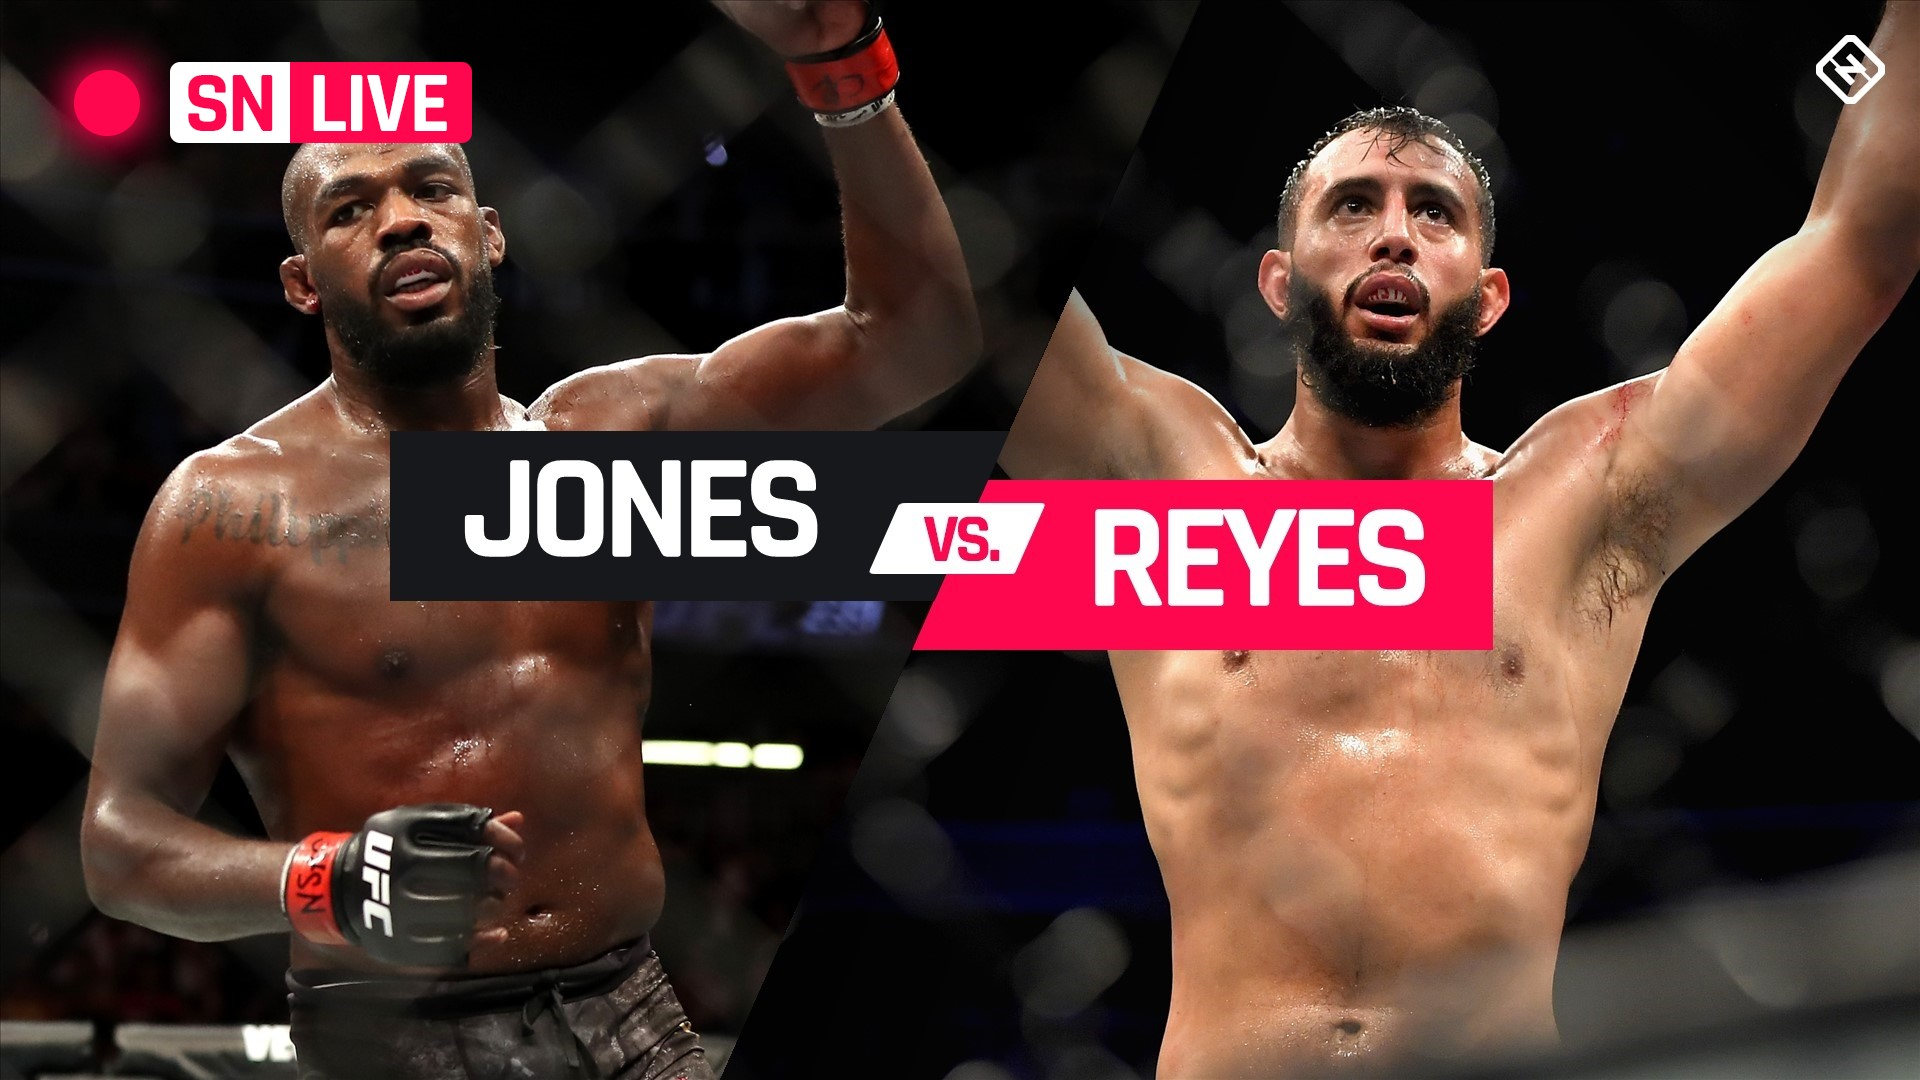 Jones Vs Reyes